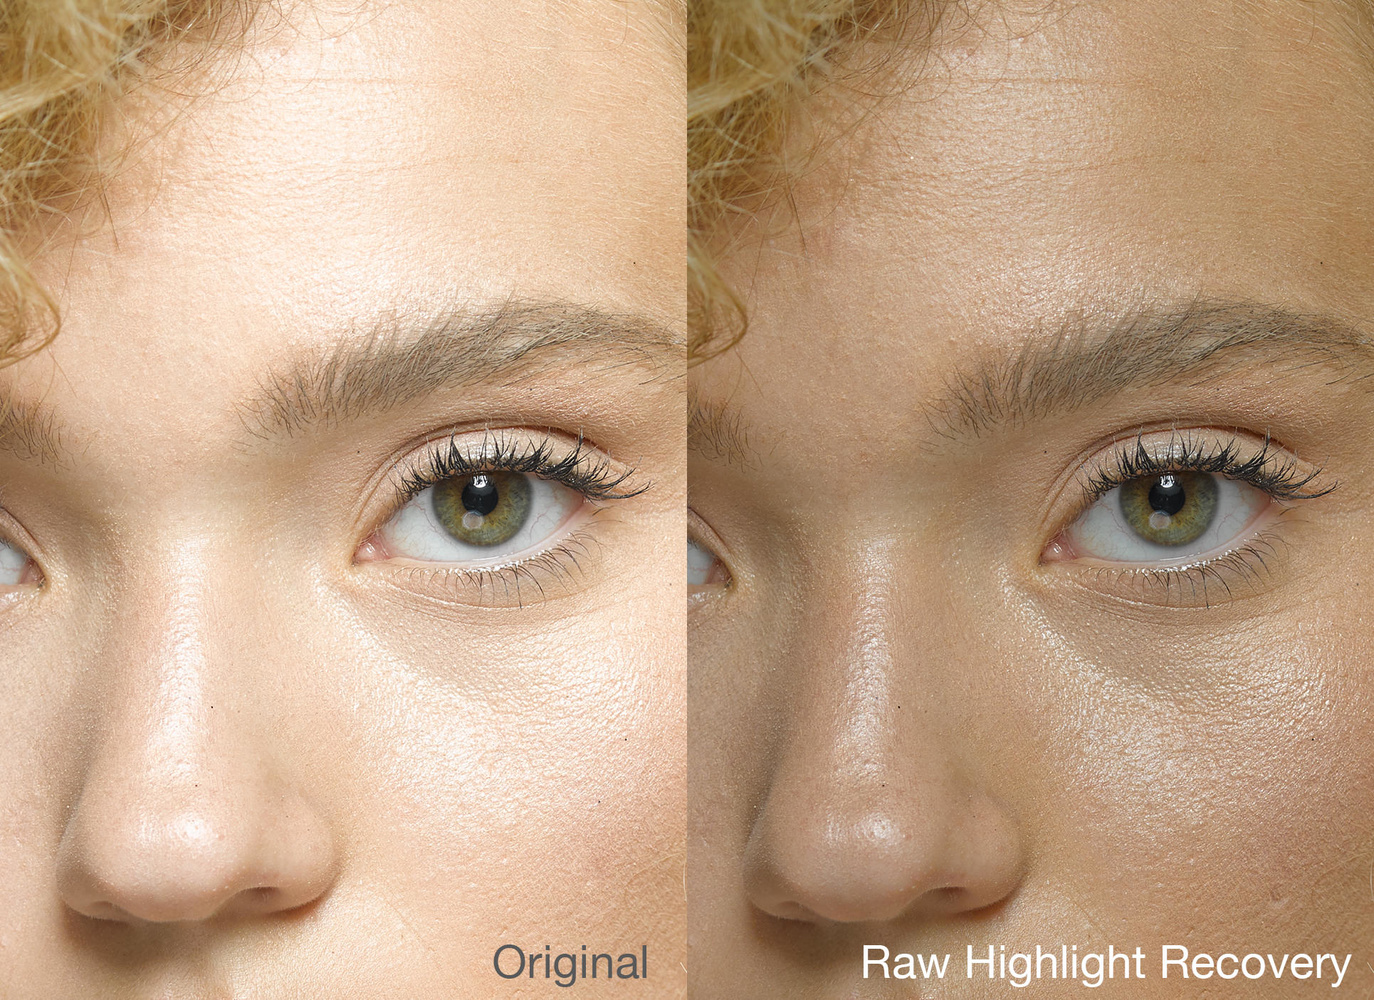 How to Recover Skin Texture from Over-Exposed Highlights | Fstoppers